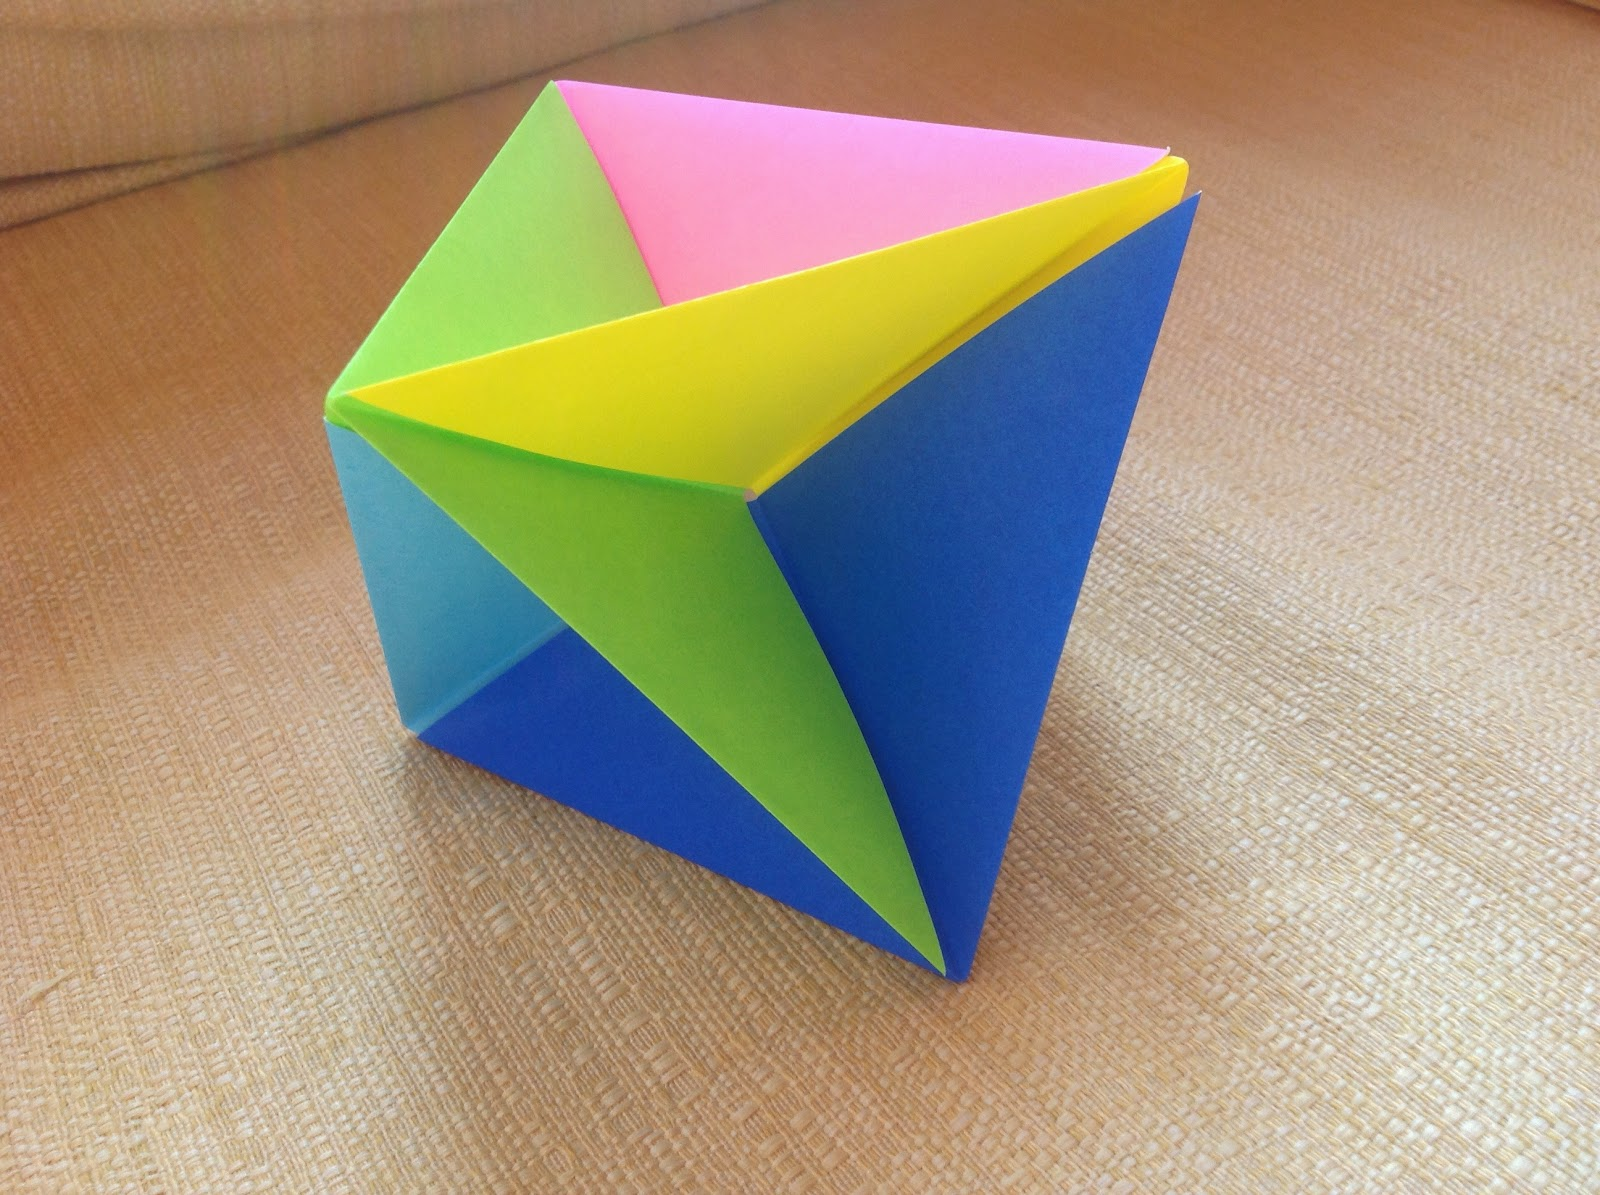 Papercrafts and other fun things: Origami Octahedron and ... - photo#20